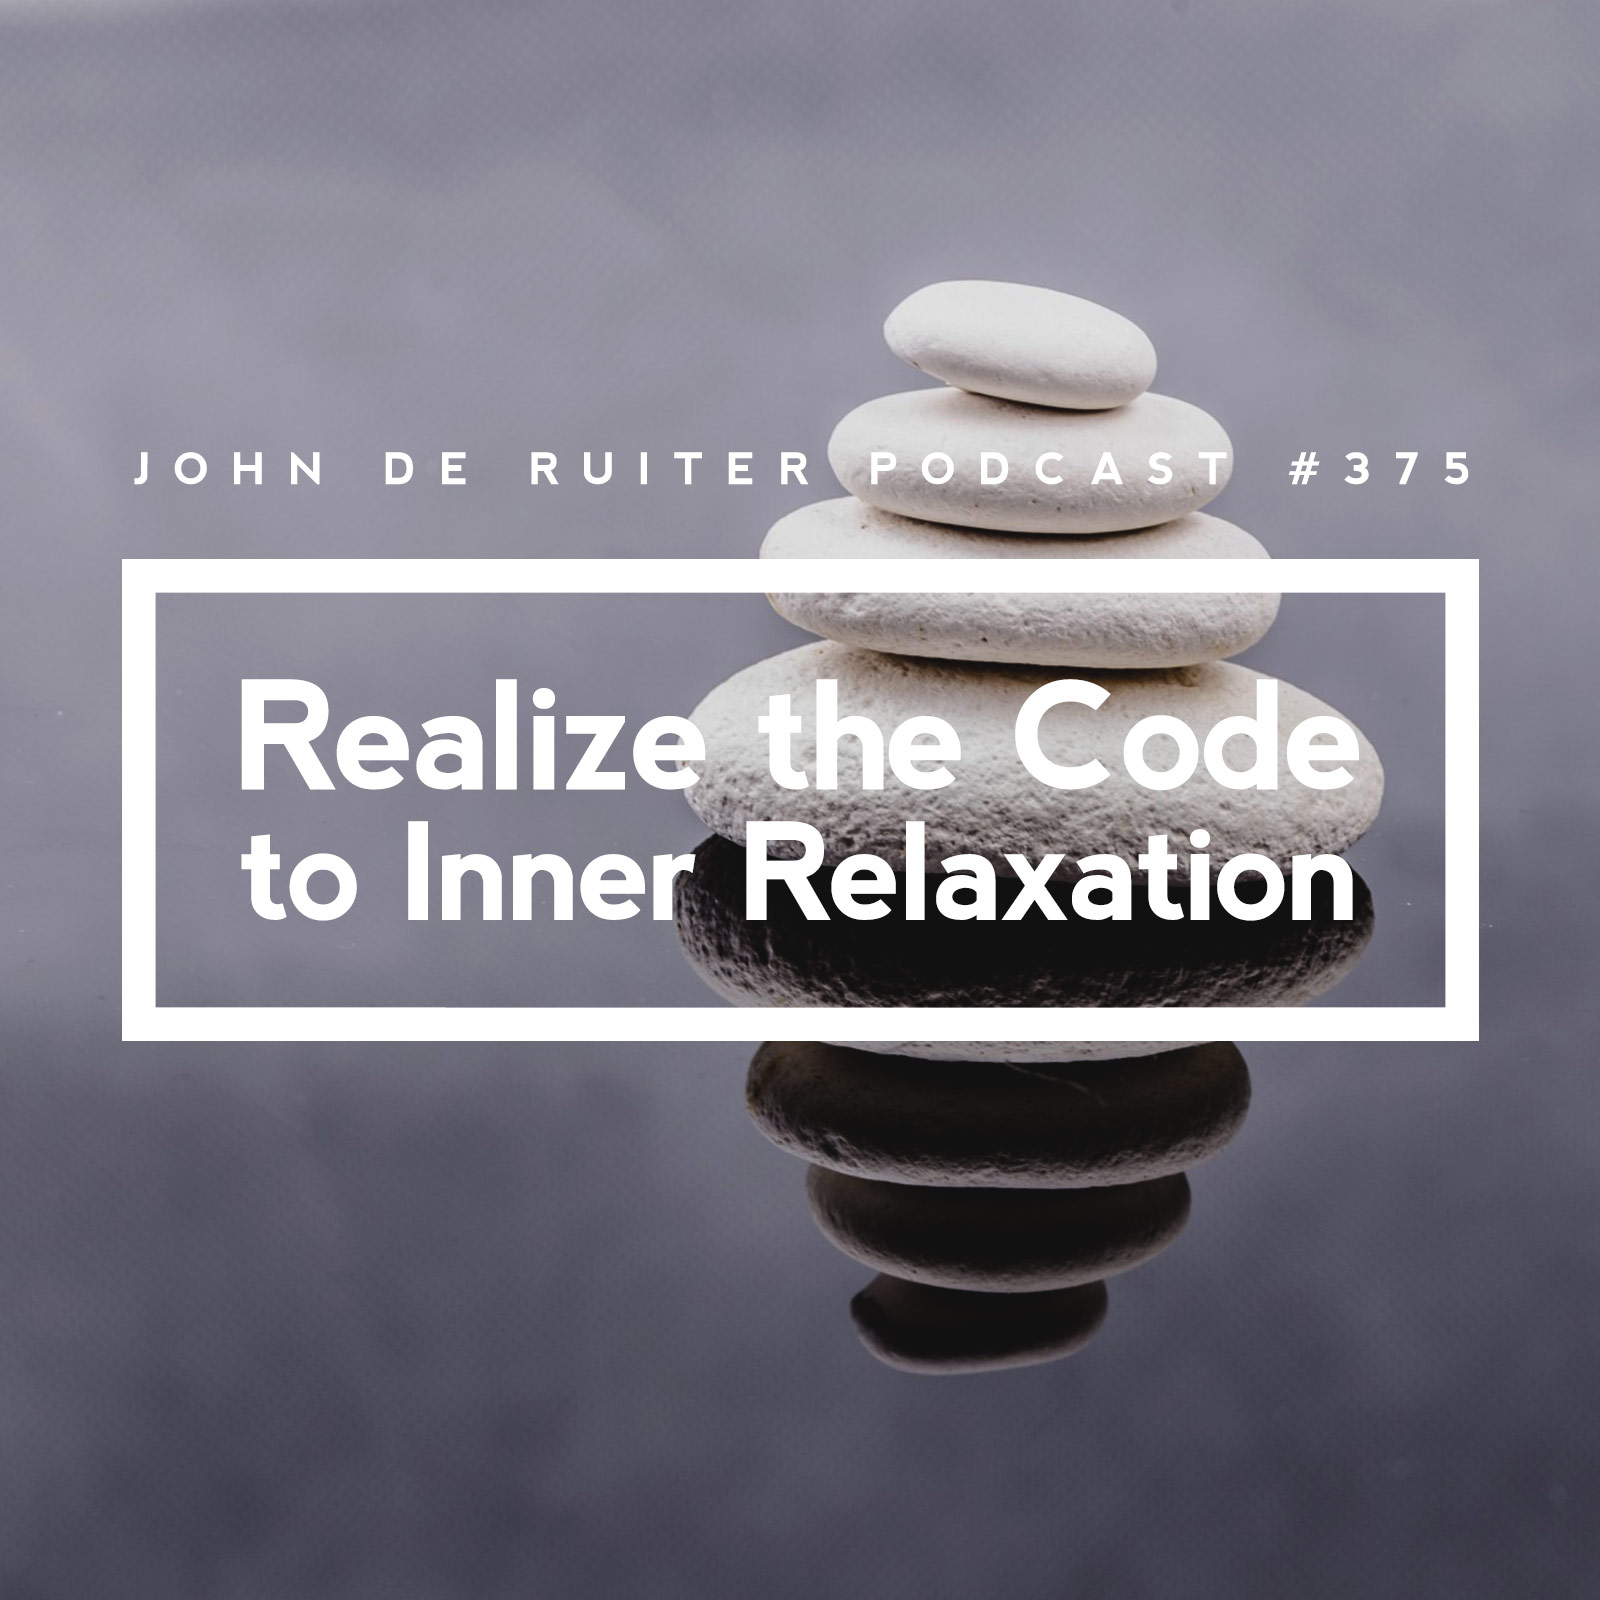 JdR Podcast 375 – Realize the Code to Inner Relaxation